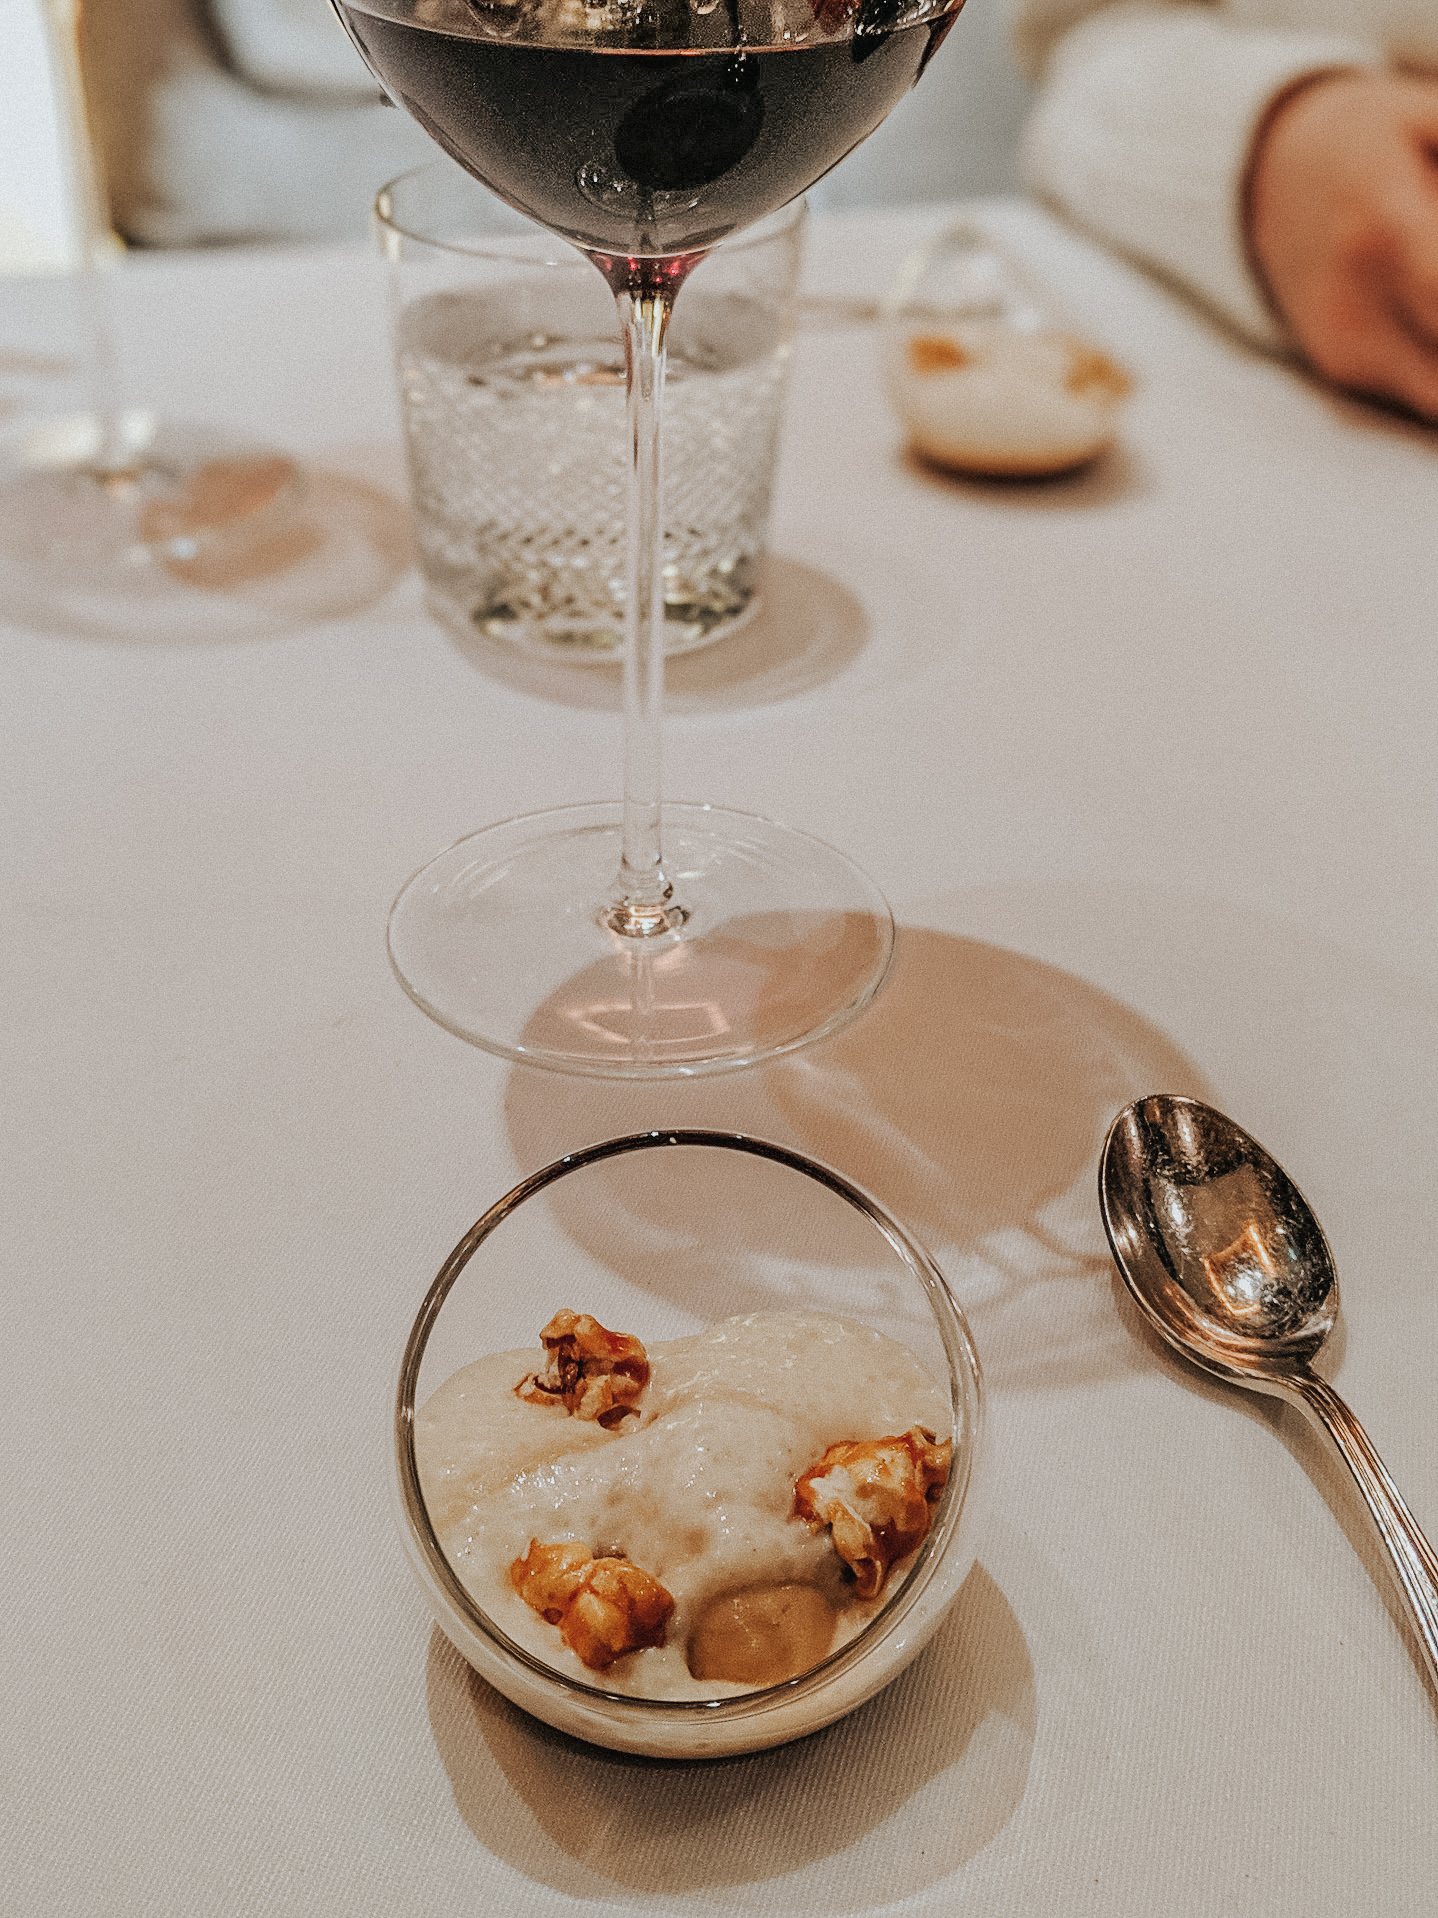 Some kind of caramel popcorn dessert with foam and ice cream — can't remember exact details.